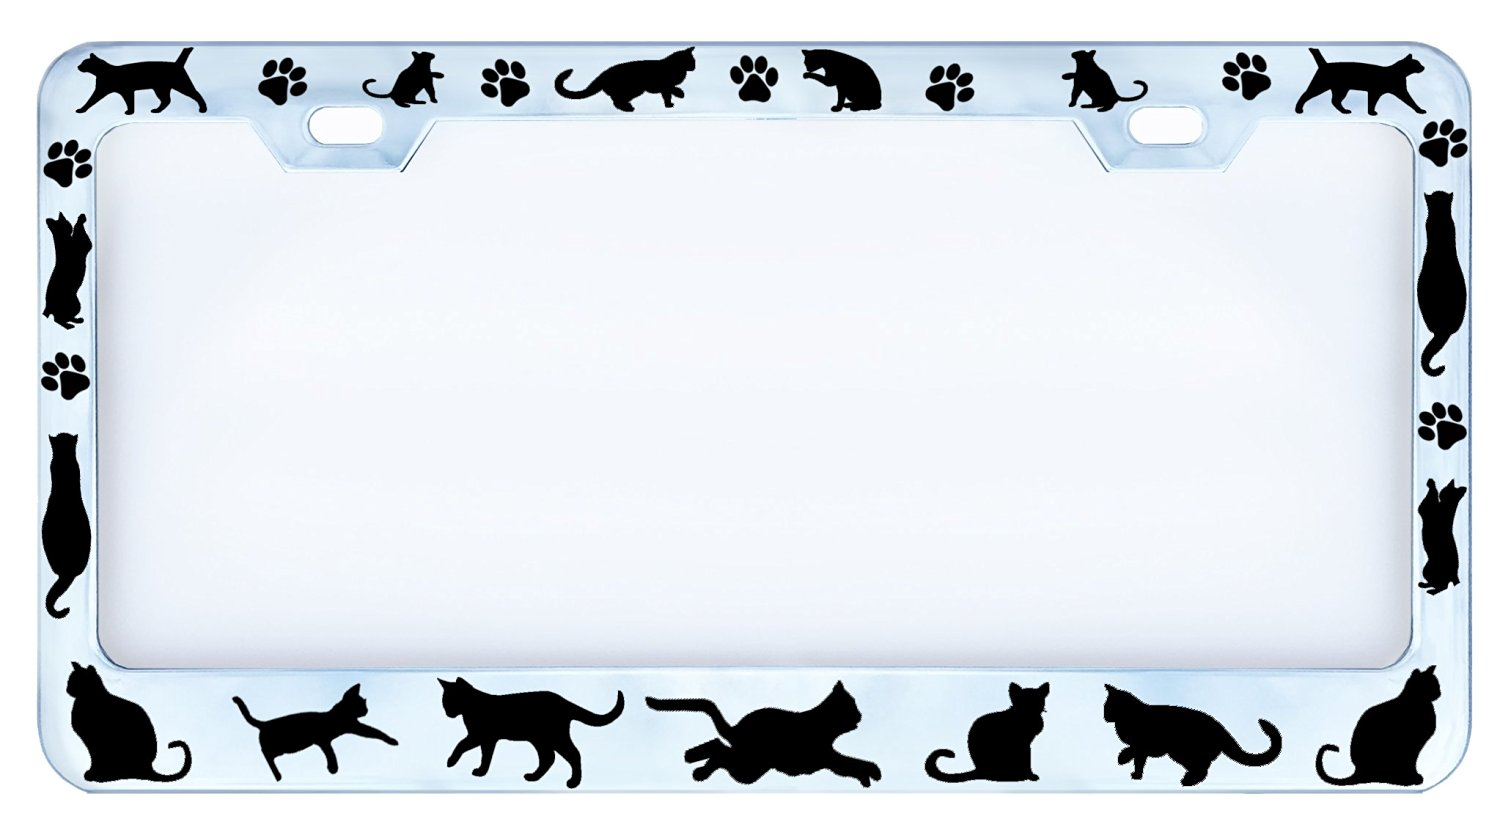 Buy Cats & Paws Cat Figures Paw Chrome Auto Car License Plate Frame ...